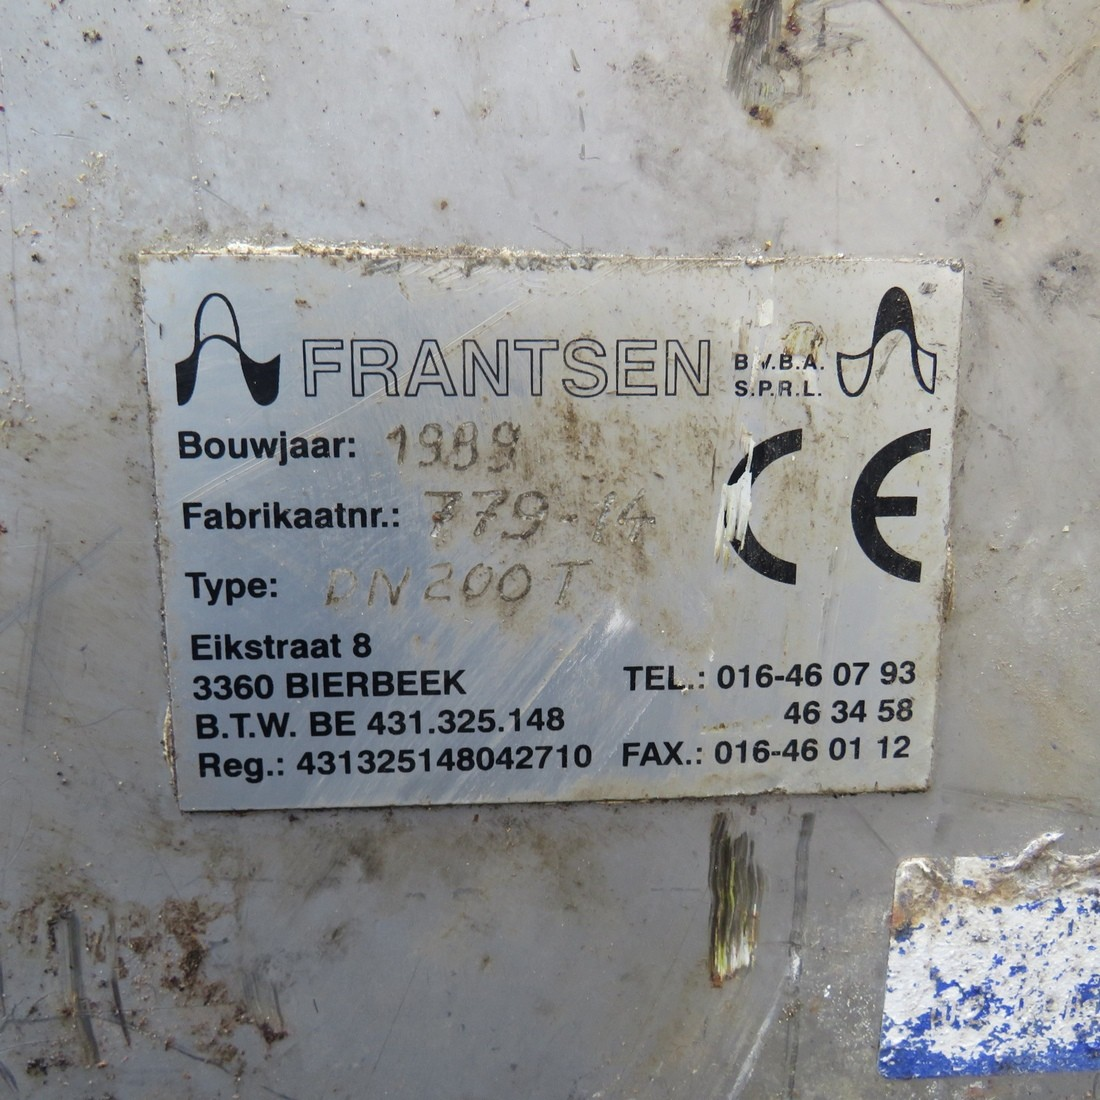 R4S1091 Stainless steel FRANTSEN screw - Ø250X5400 mm